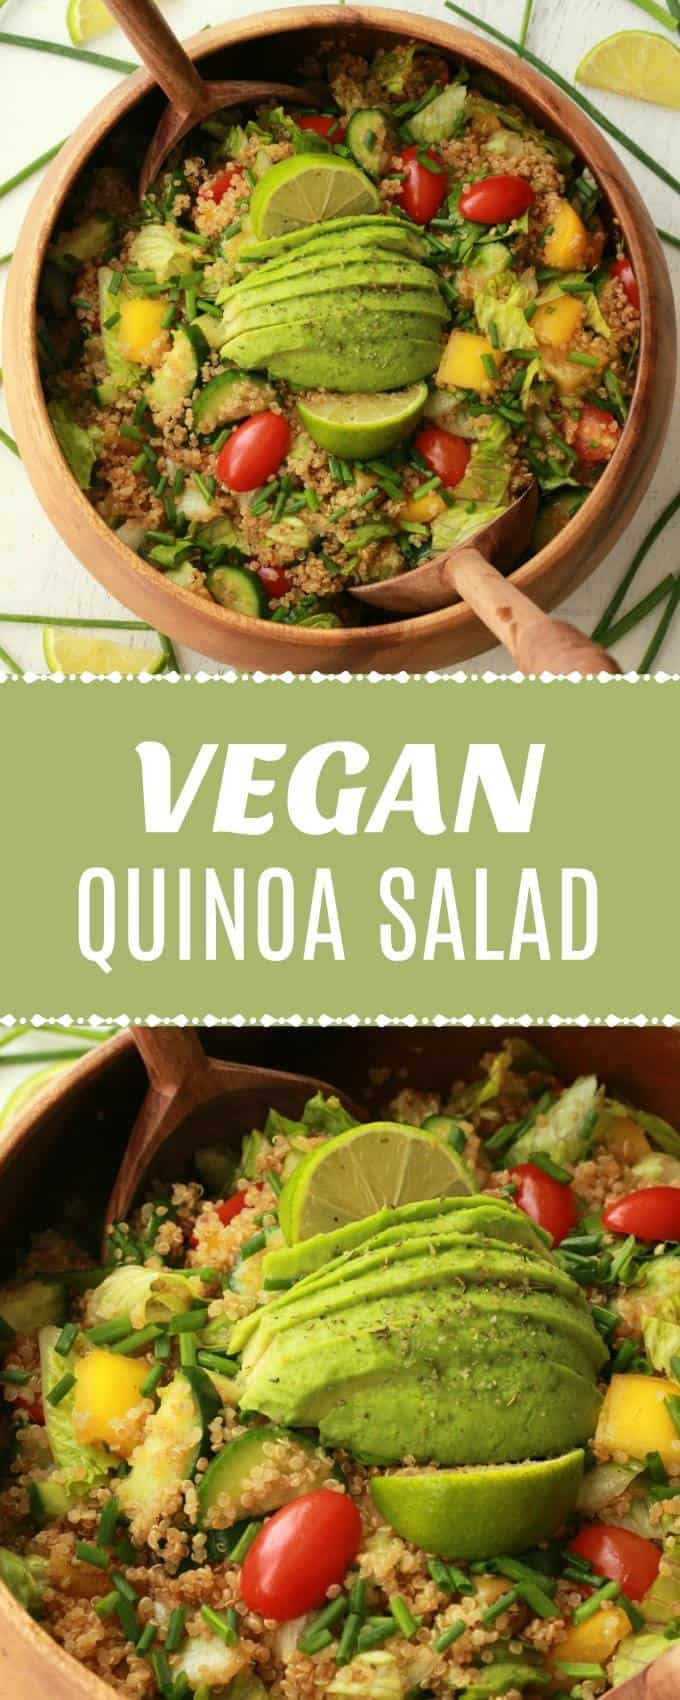 This vegan quinoa salad with sesame soy dressing is bursting with healthy flavor and goodness. Vegan, gluten-free, satisfying and delicious! | lovingitvegan.com